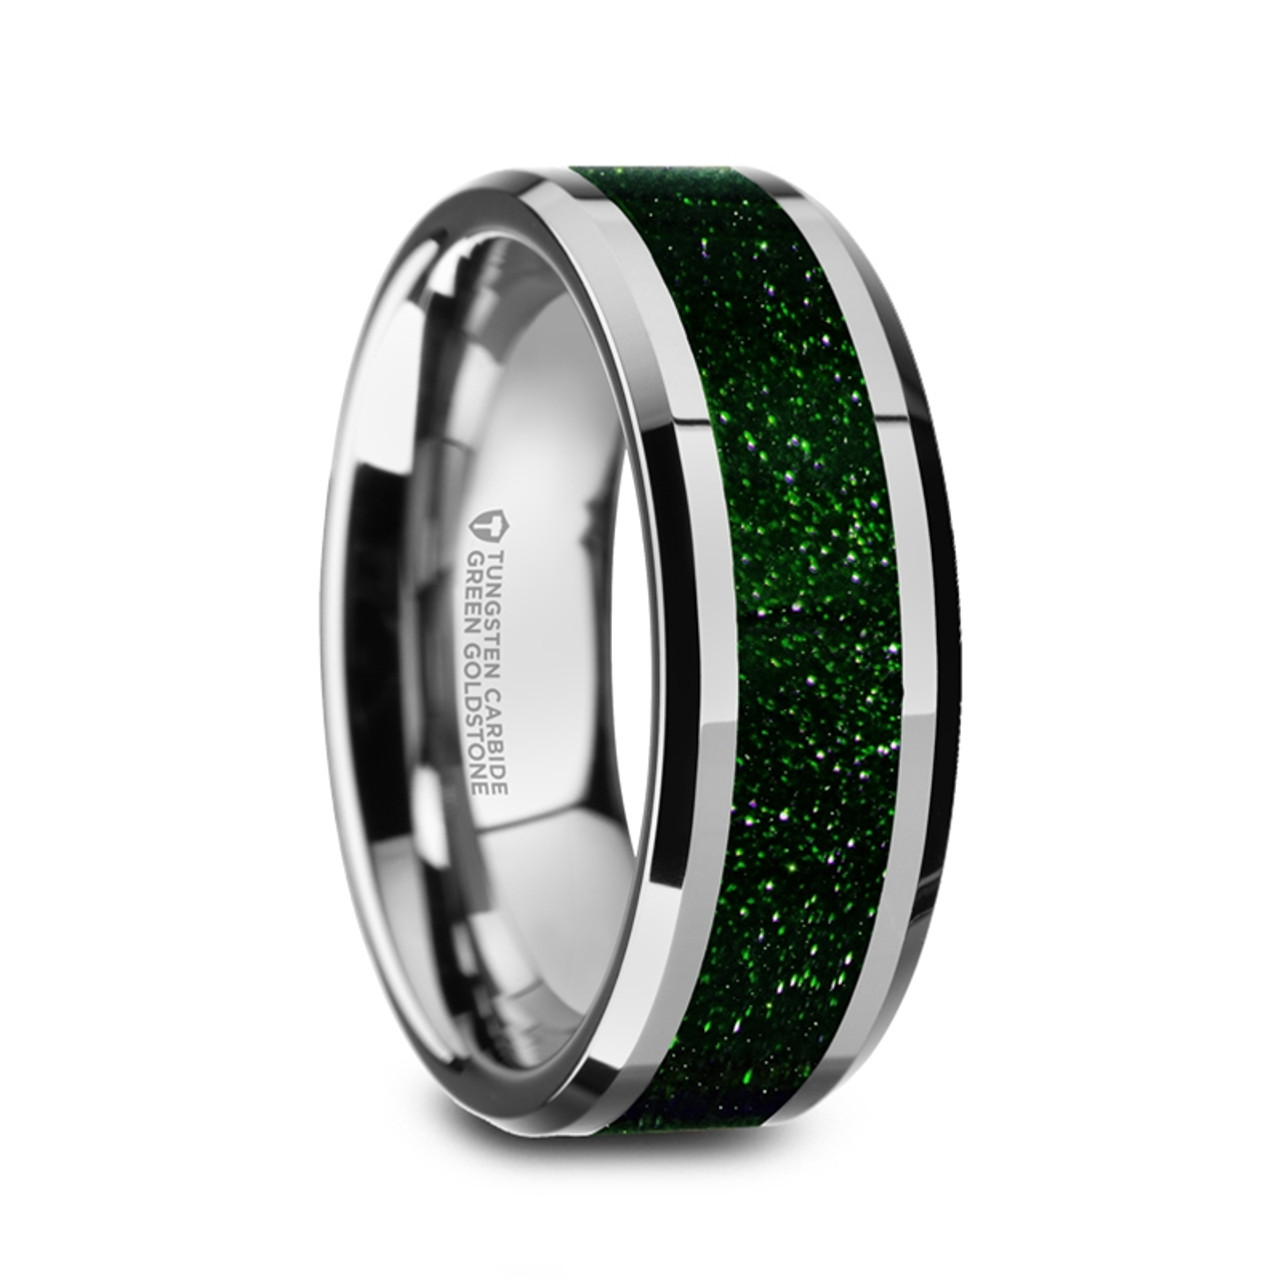 7a8a98f37711a Capetian Men's Tungsten Wedding Band with Green Goldstone Inlay